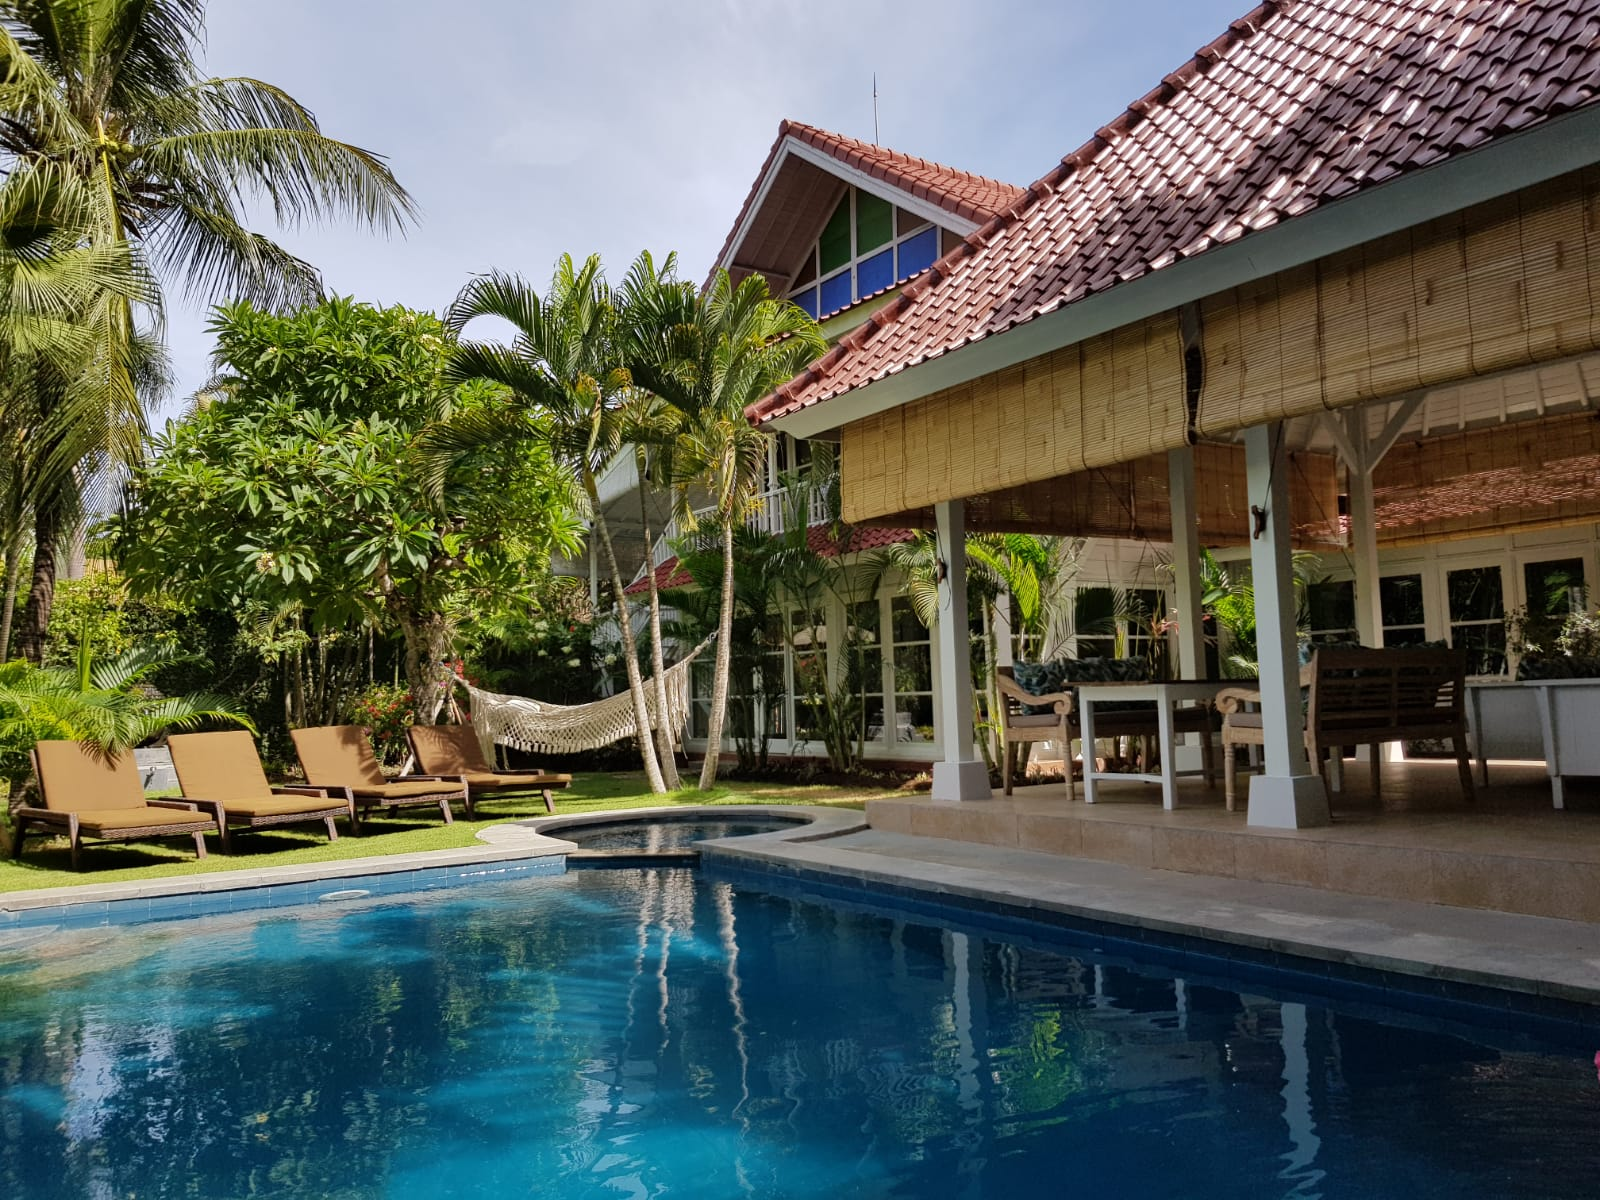 Twin Freehold Villa Sale in Seminyak – Entire Villa Complex for Sale or Available as Single Villa Units for Individual Sale